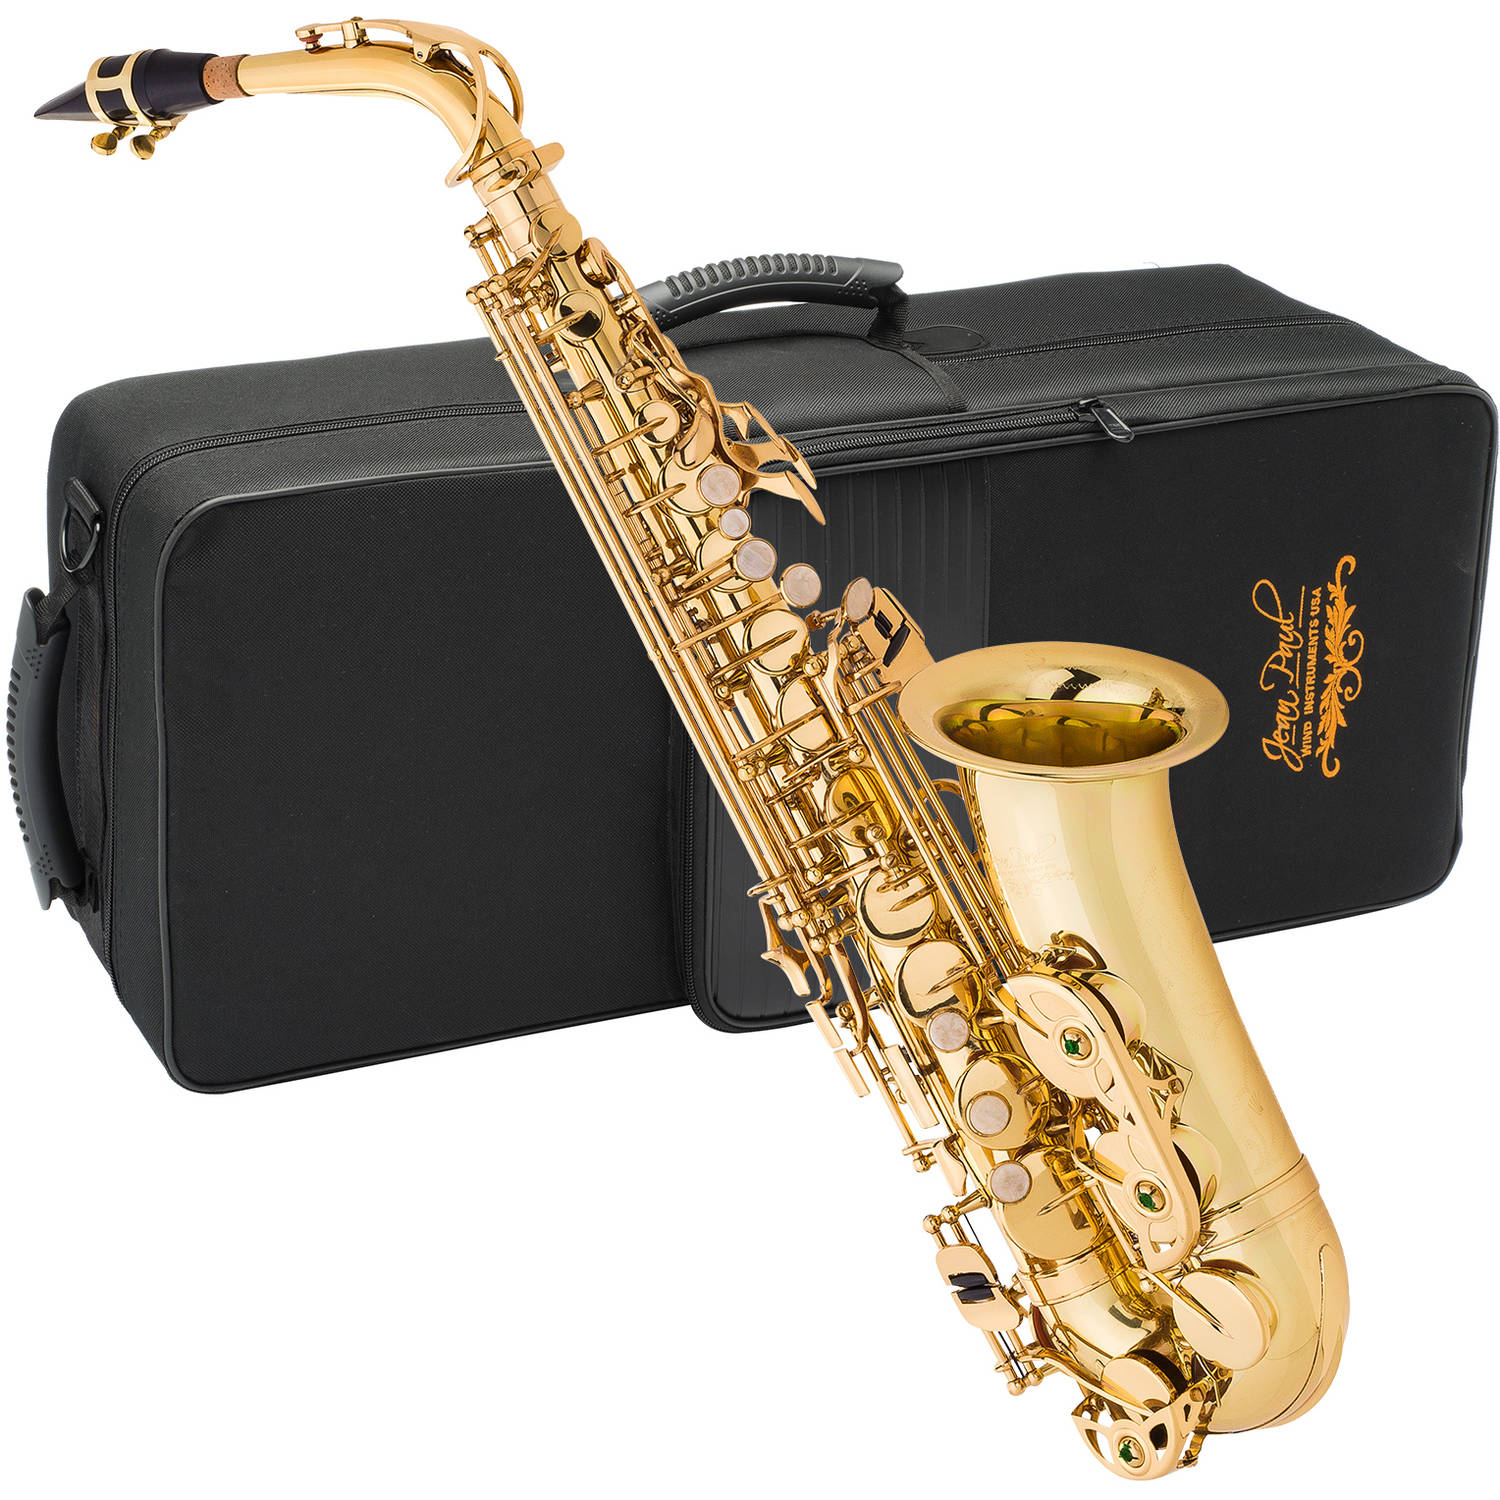 Jean Paul AS-400 Alto Saxophone with Case